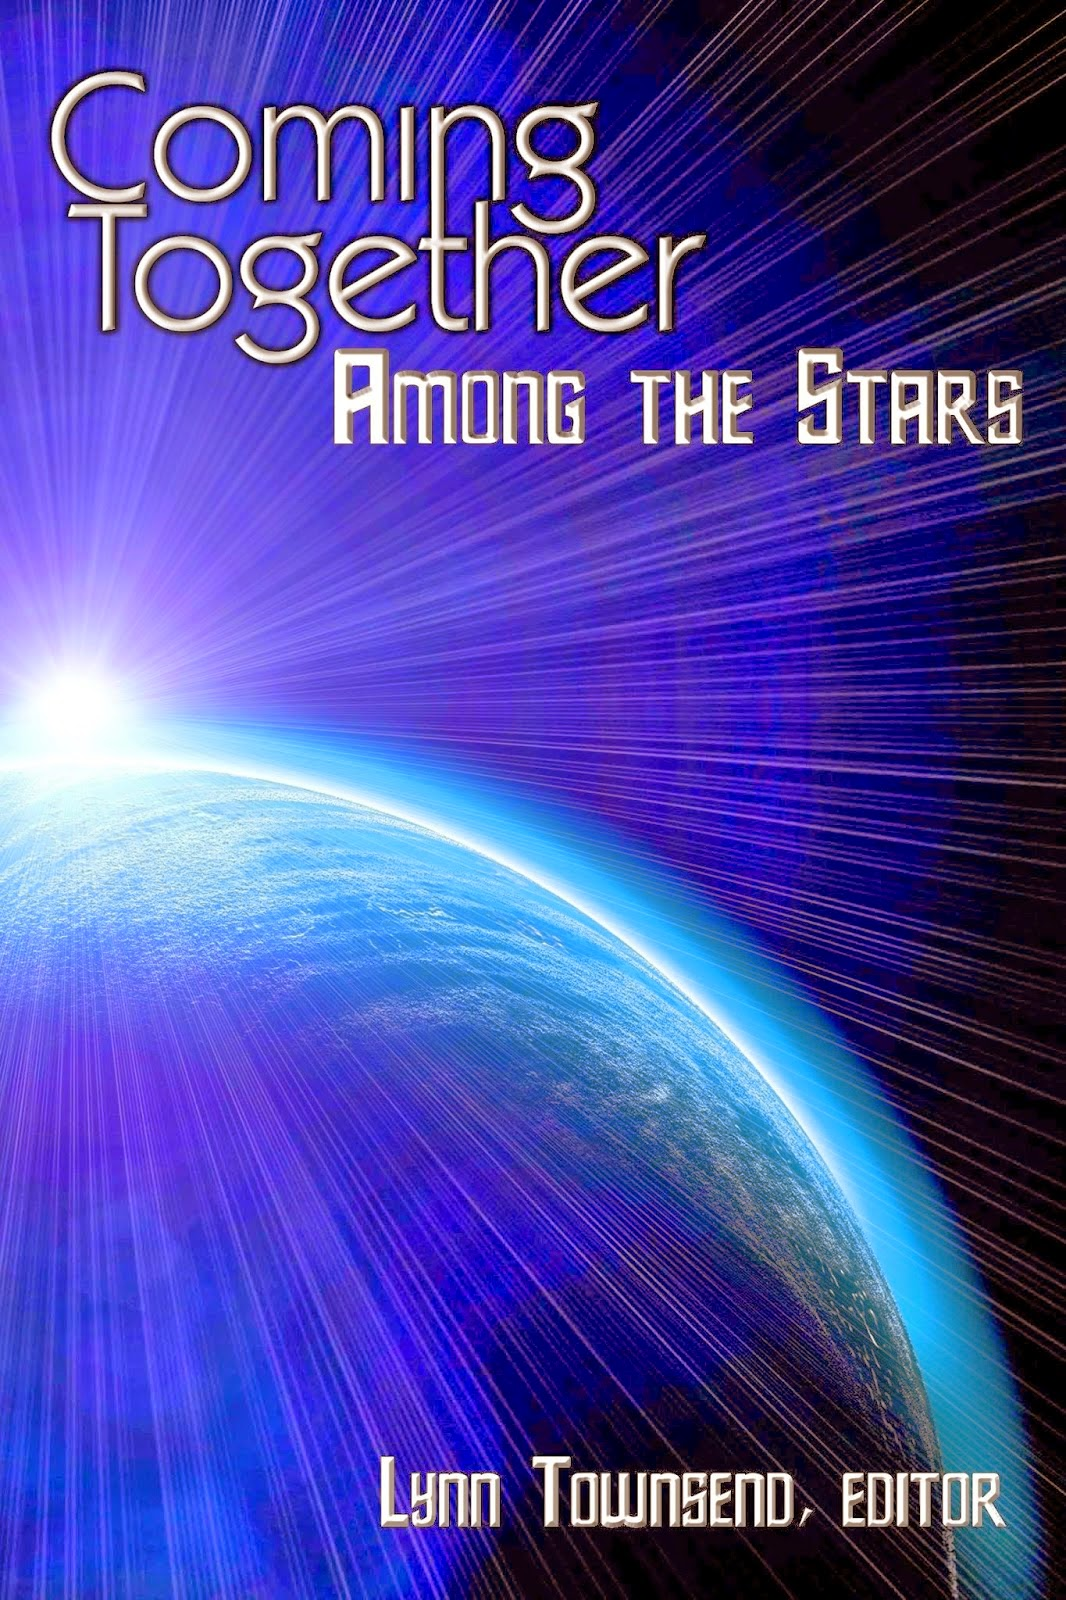 Coming Together: Among the stars